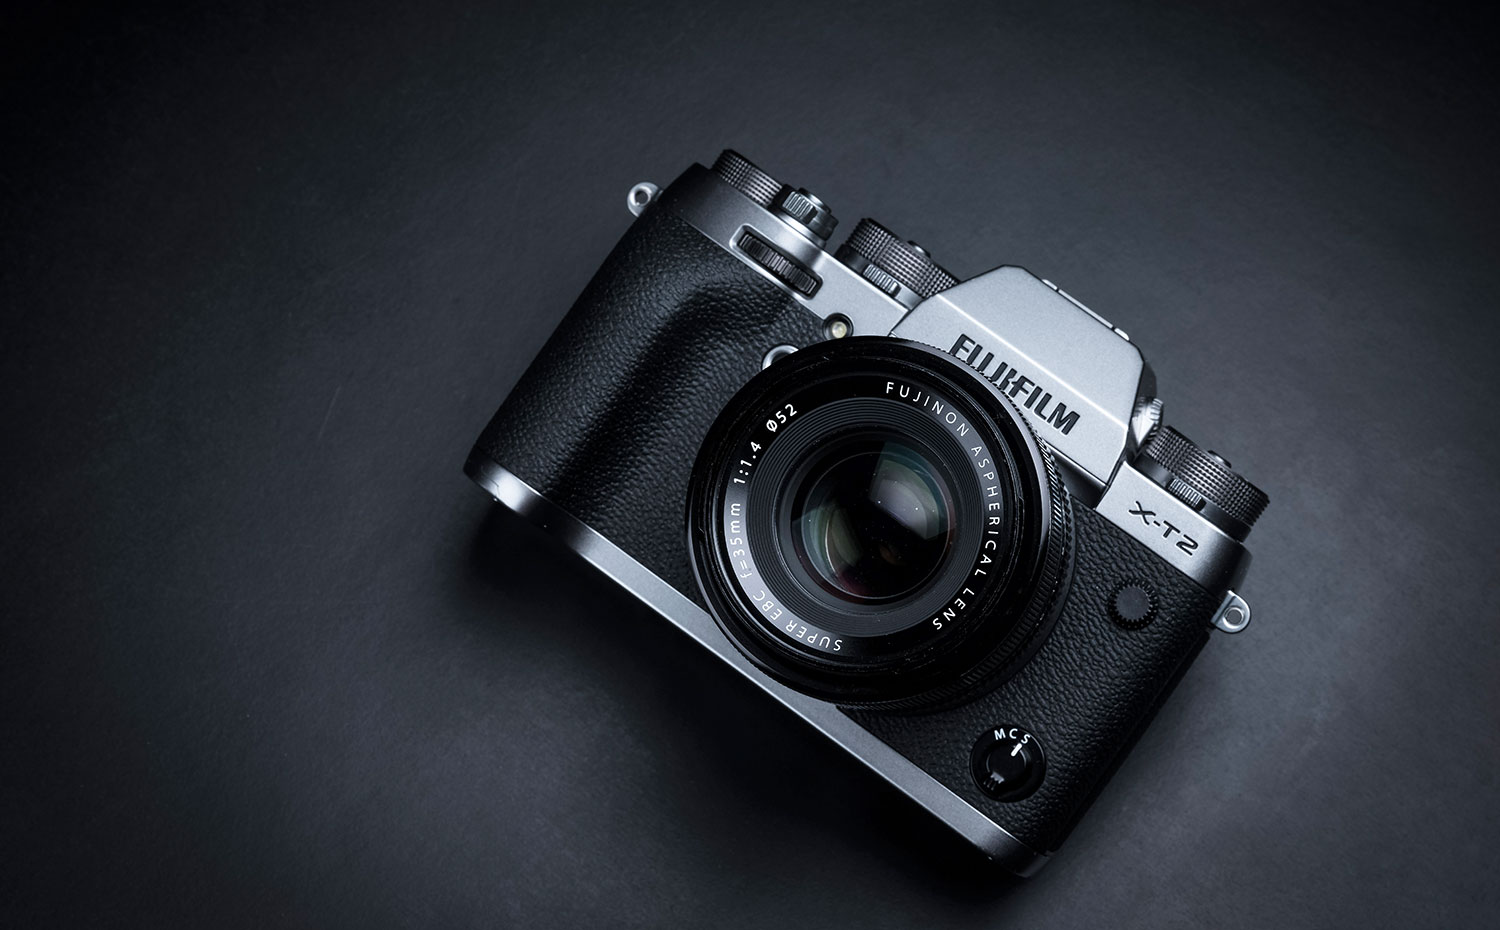 JUST ANNOUNCED: Fujifilm release firmware updates for X-H1, X-T2, X-Pro2, X-E3 and X100F